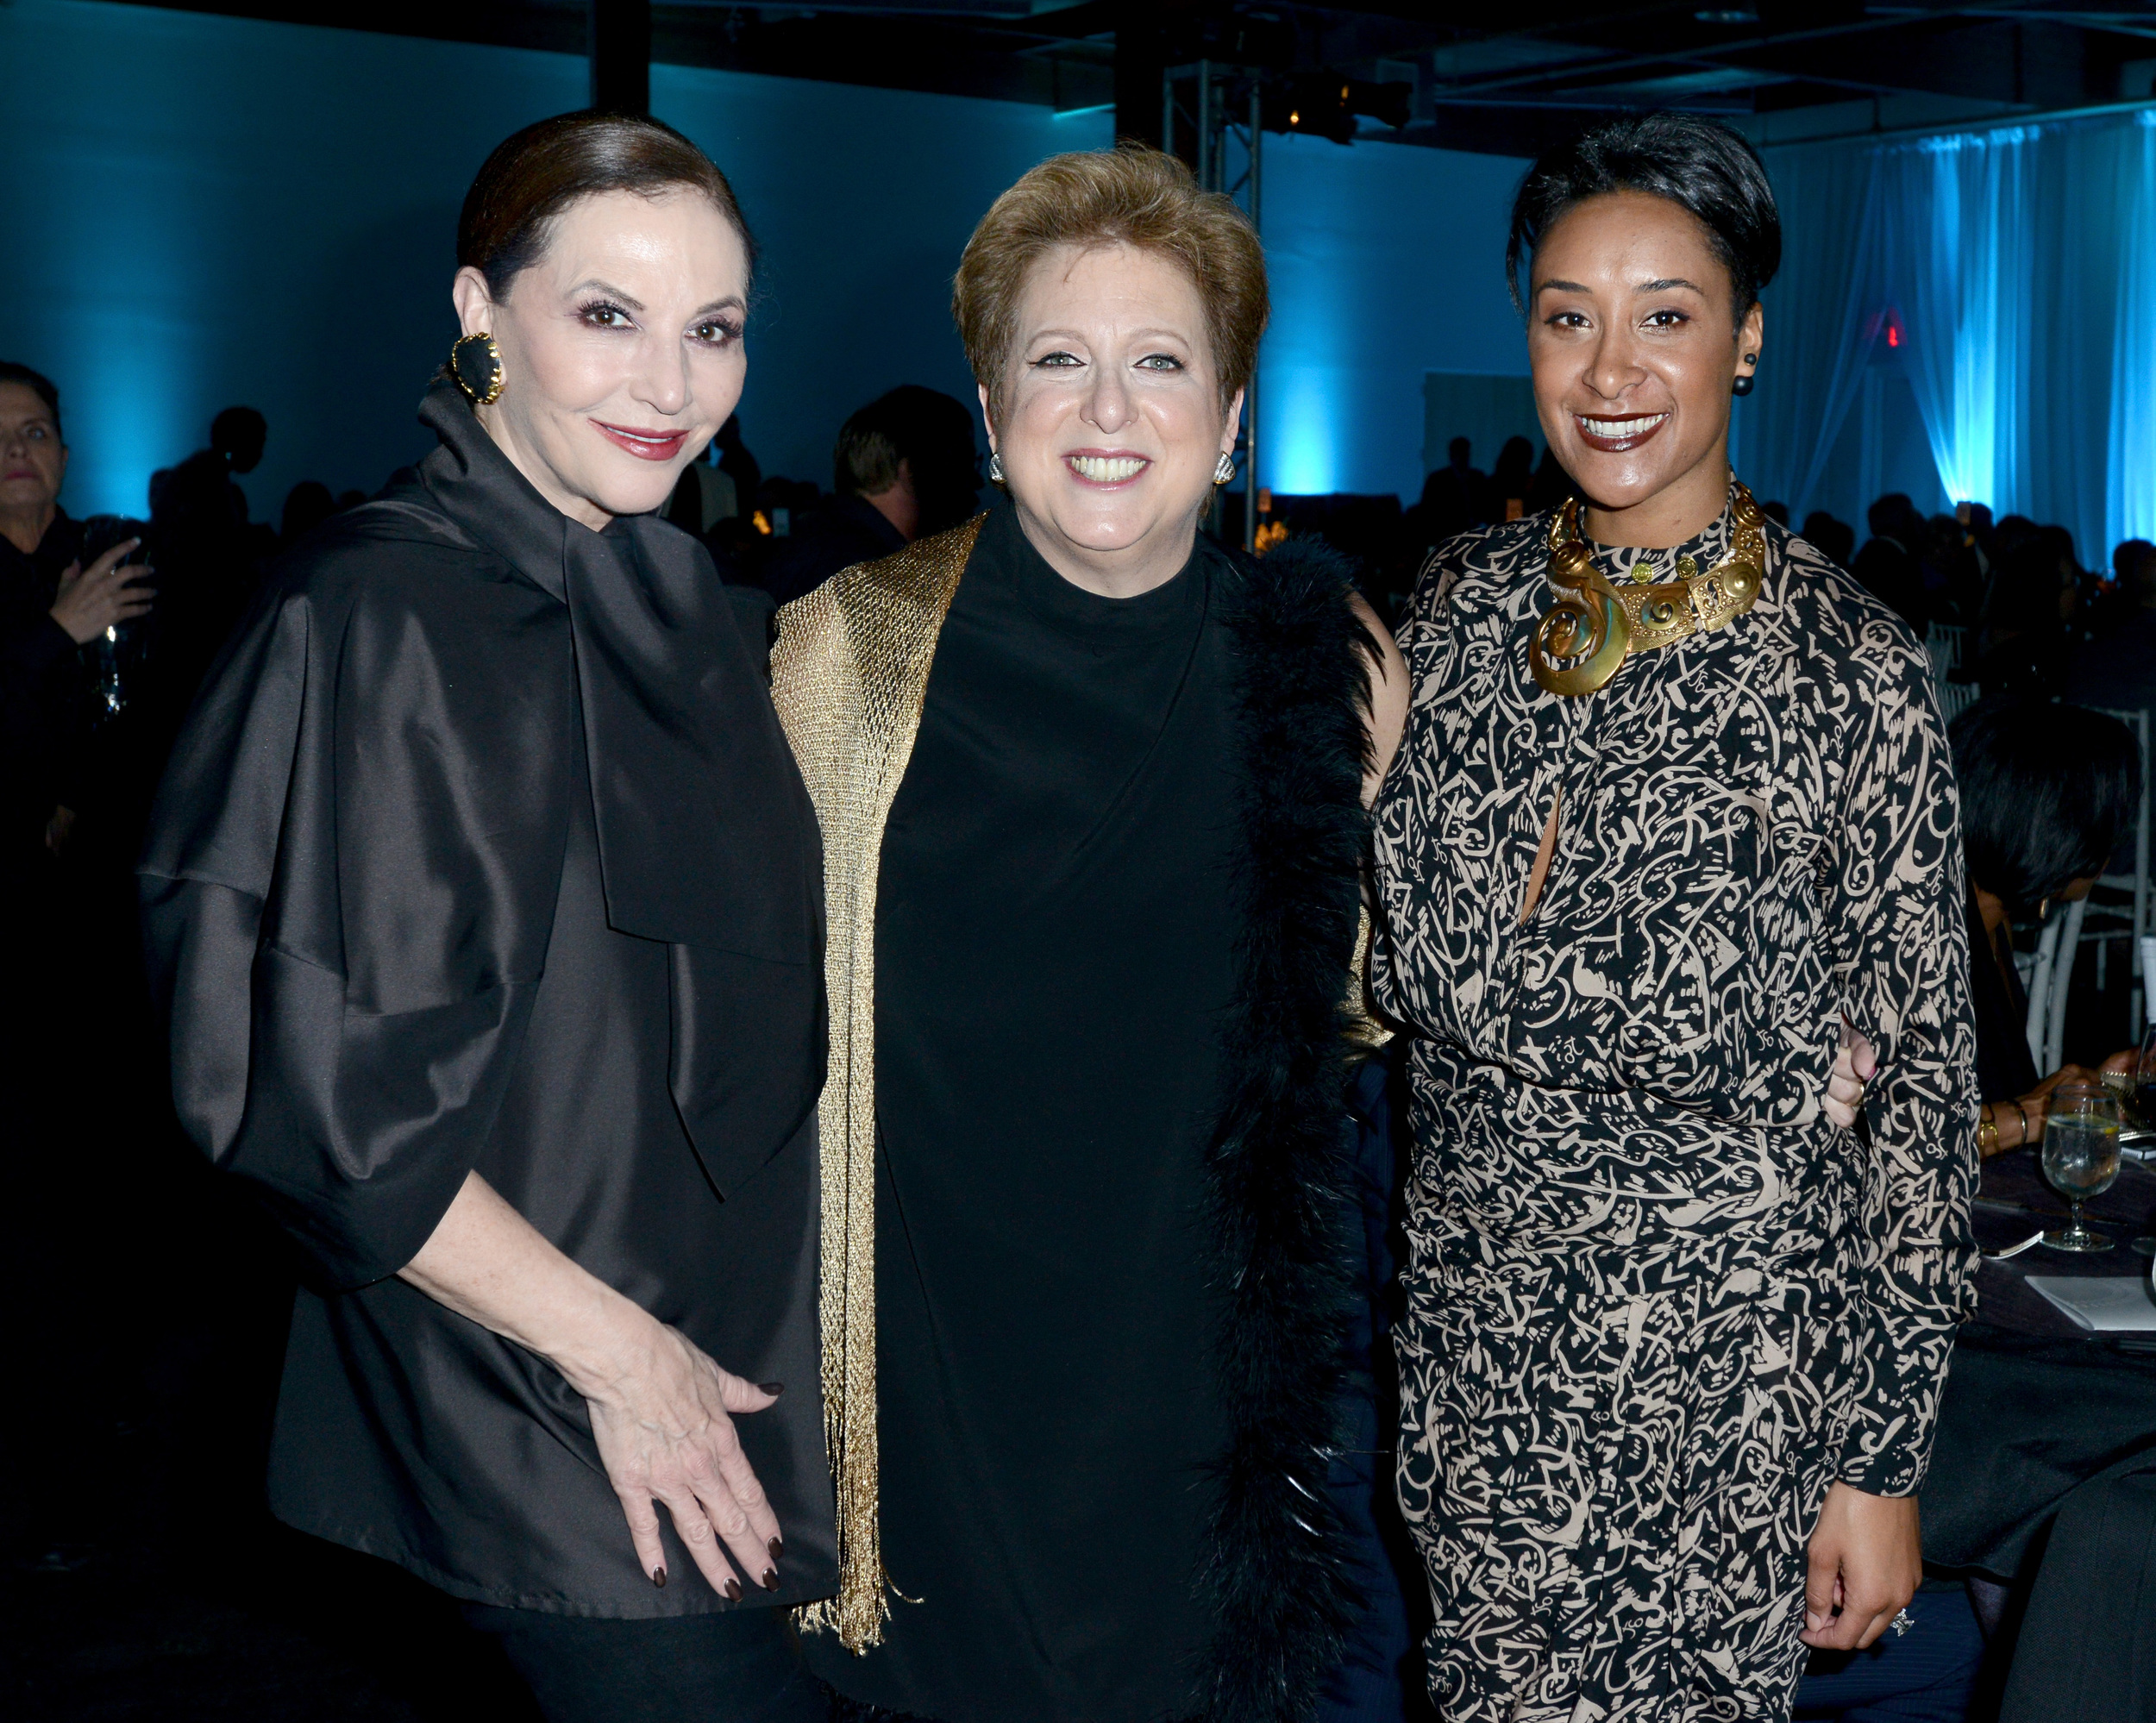 Jan Miller, President & CEO of UNICEF USA Caryl Stern, and Kimberly Chandler,  Photo by Cooper Neill/Getty Images for US Fund for UNICEF